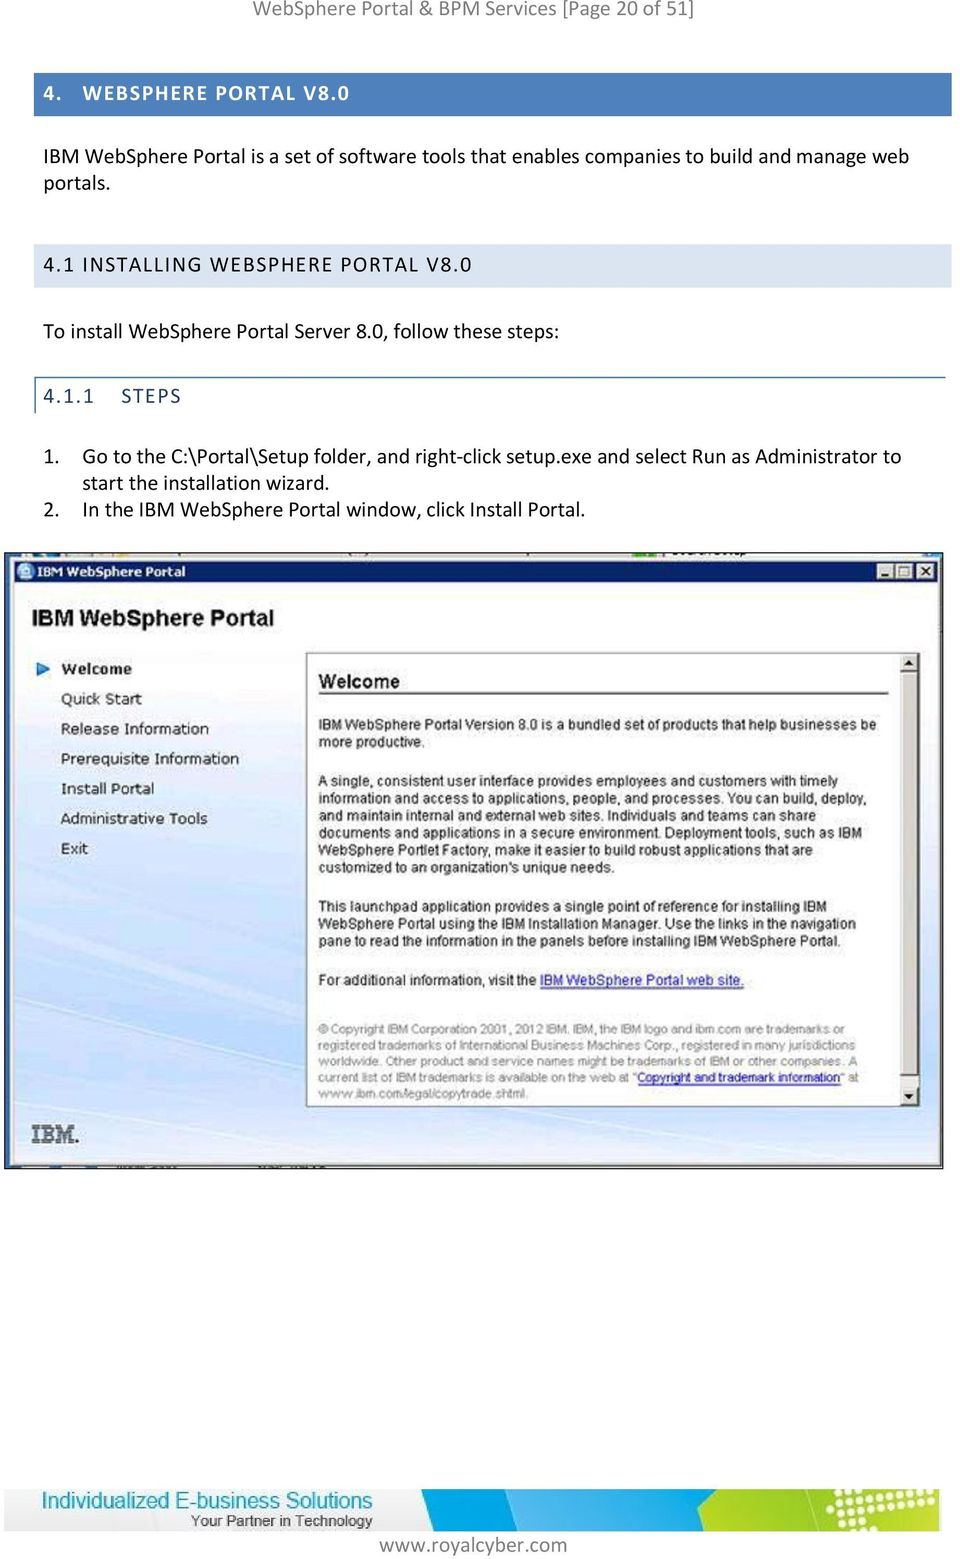 1 INSTALLING WEBSPHERE PORTAL V8.0 To install WebSphere Portal Server 8.0, follow these steps: 4.1.1 1. 2.